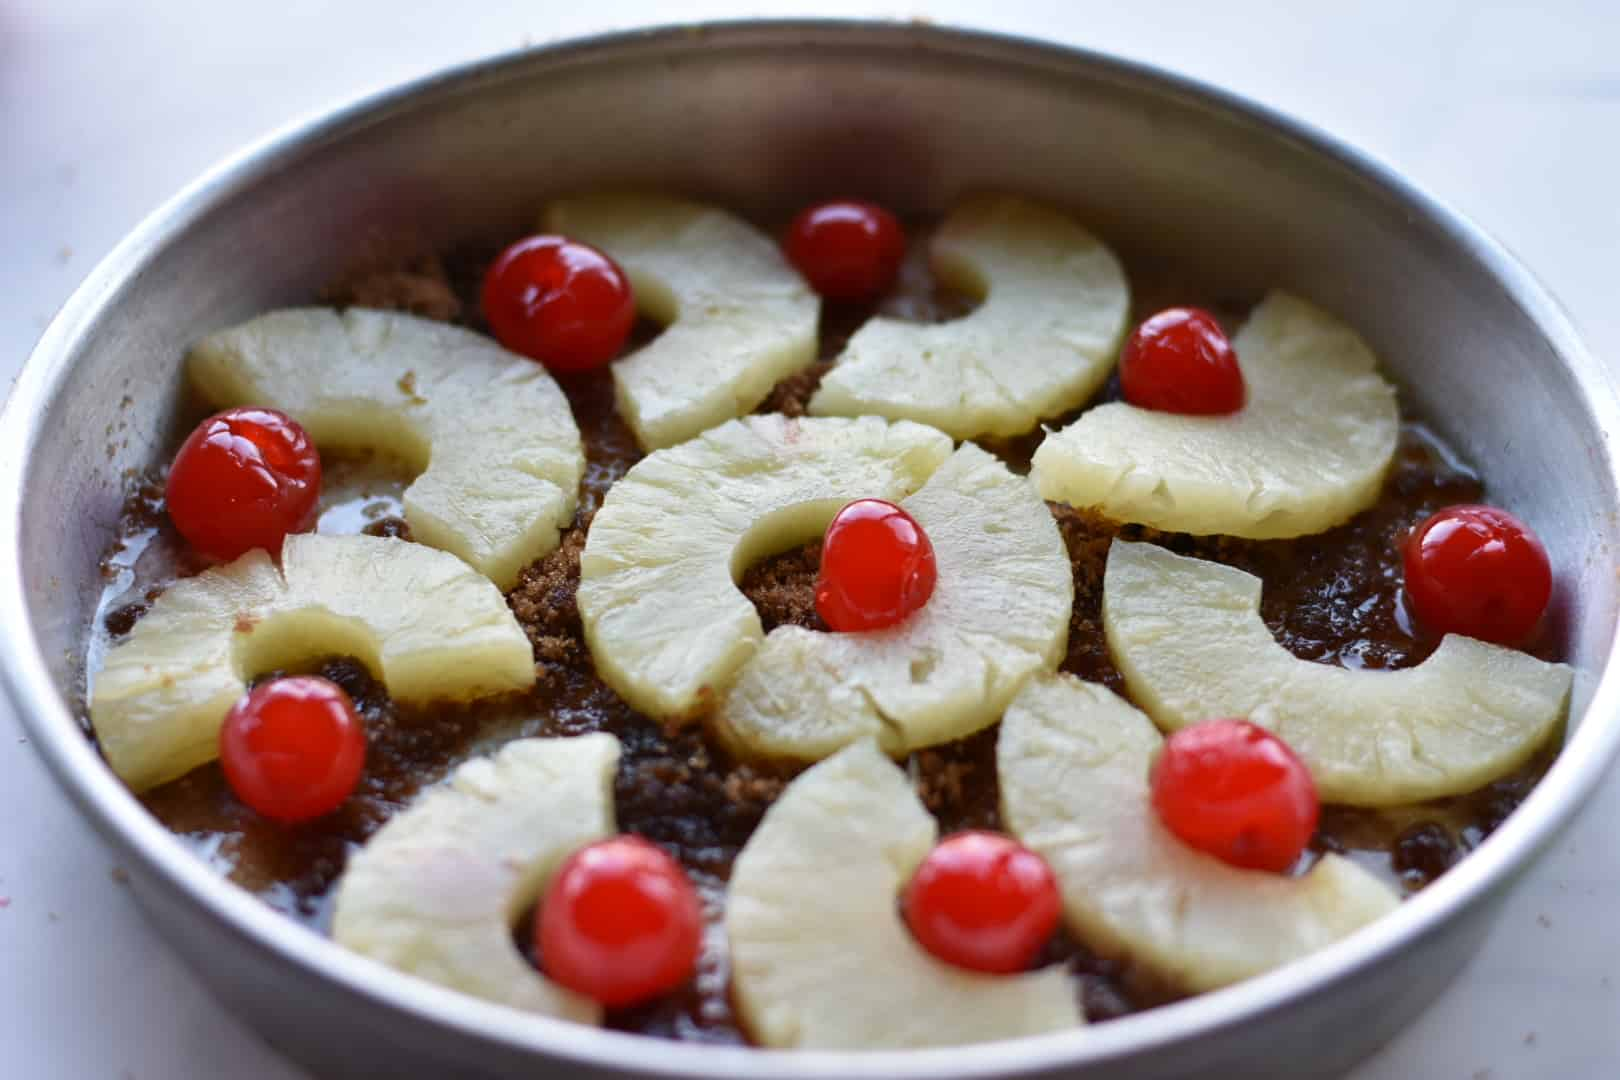 pineapple upside down cake before batter is added